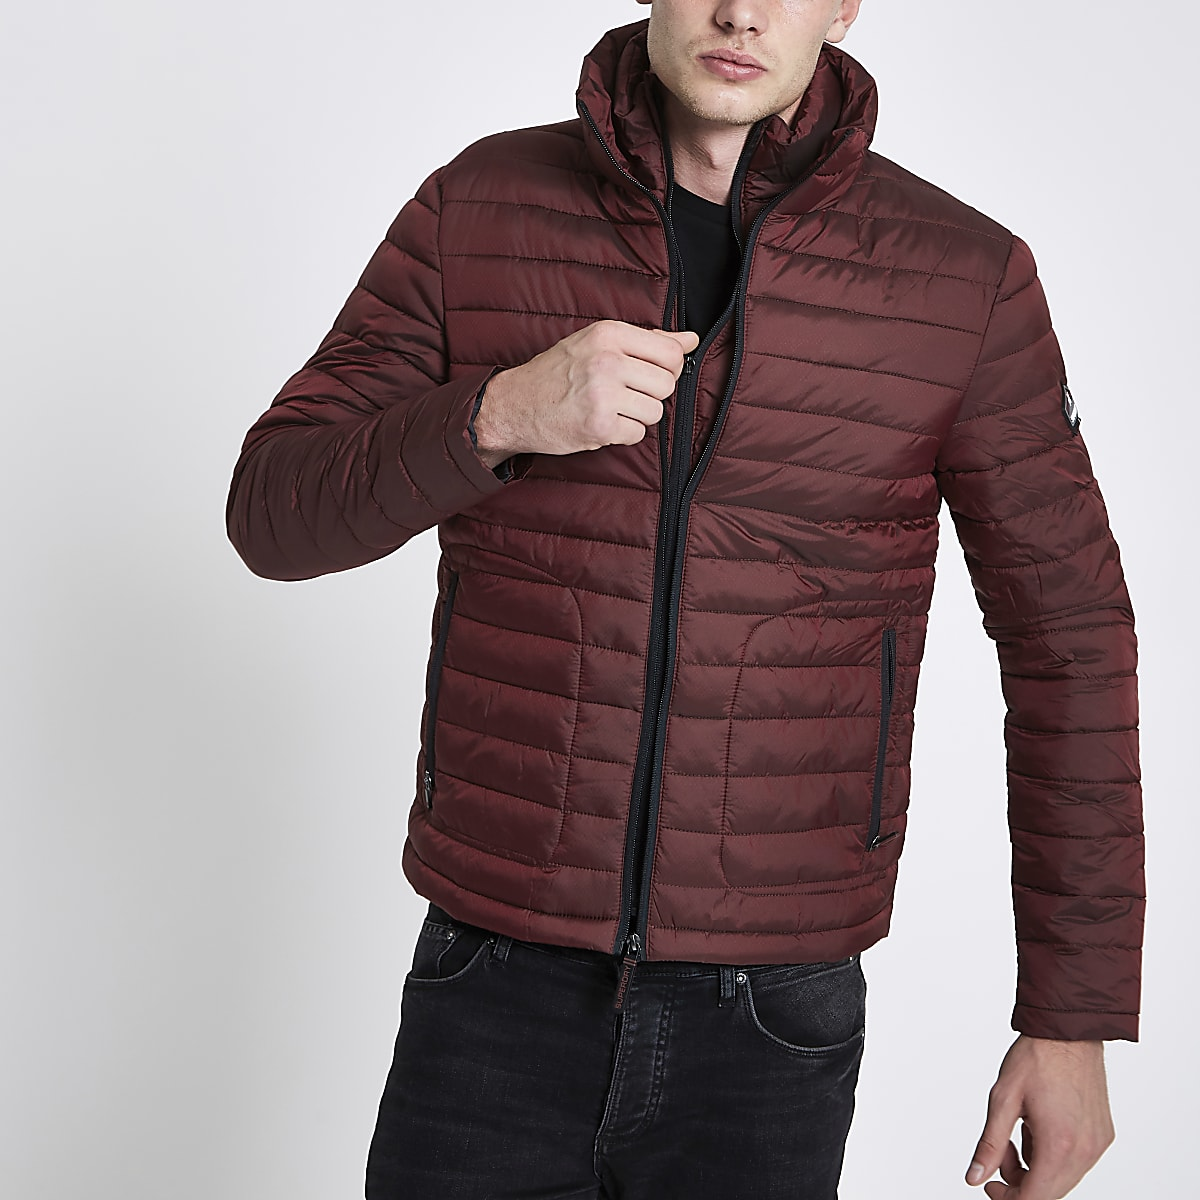 Superdry red zip funnel neck puffer jacket